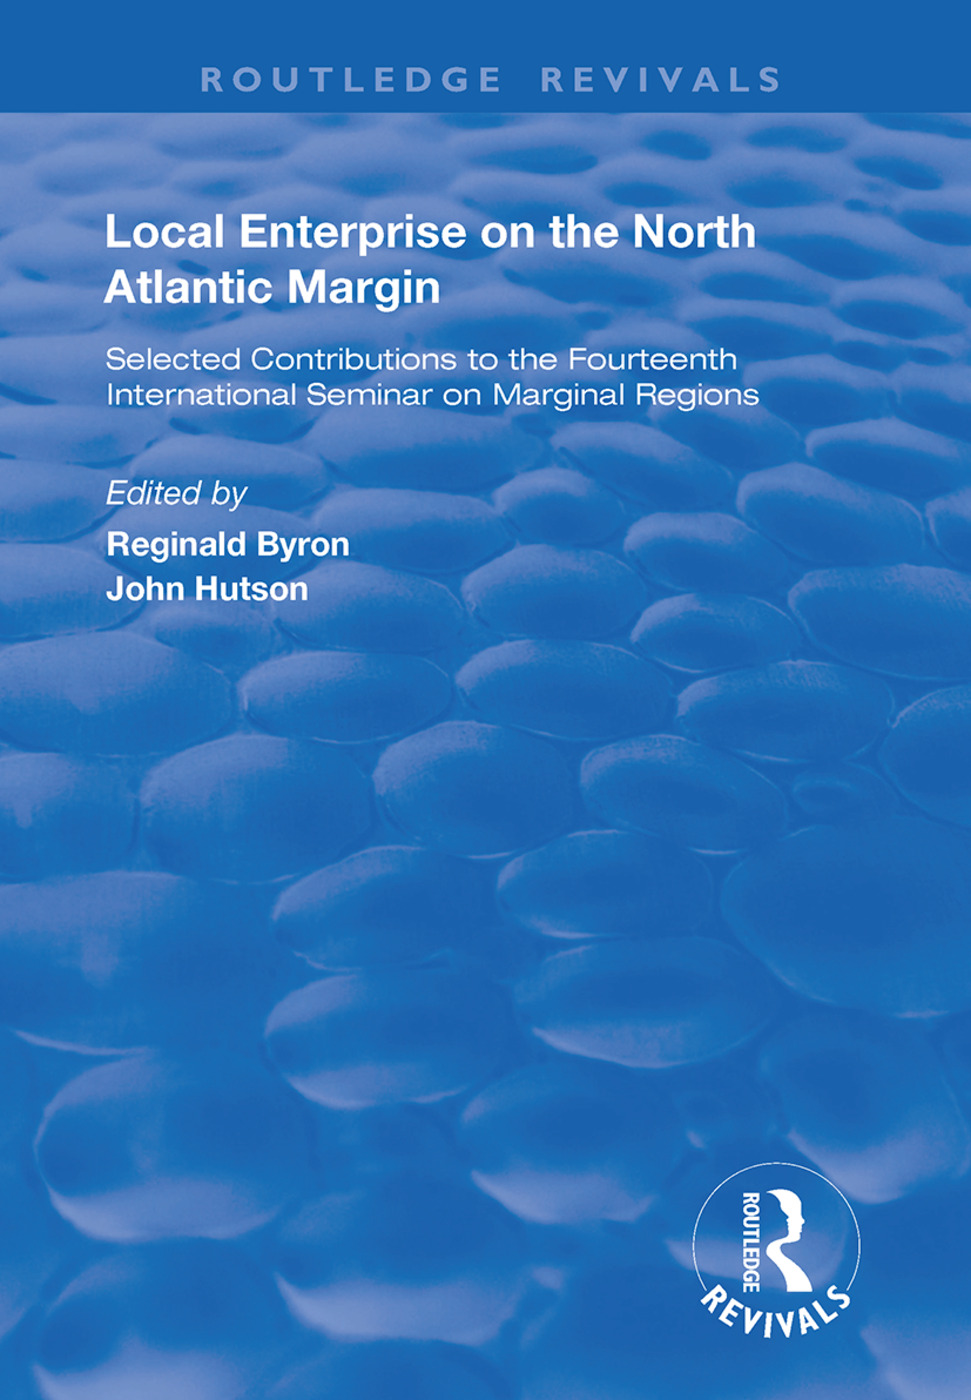 Local Enterprise on the North Atlantic Margin: Selected Contributions to the Fourteenth International Seminar on Marginal Regions book cover